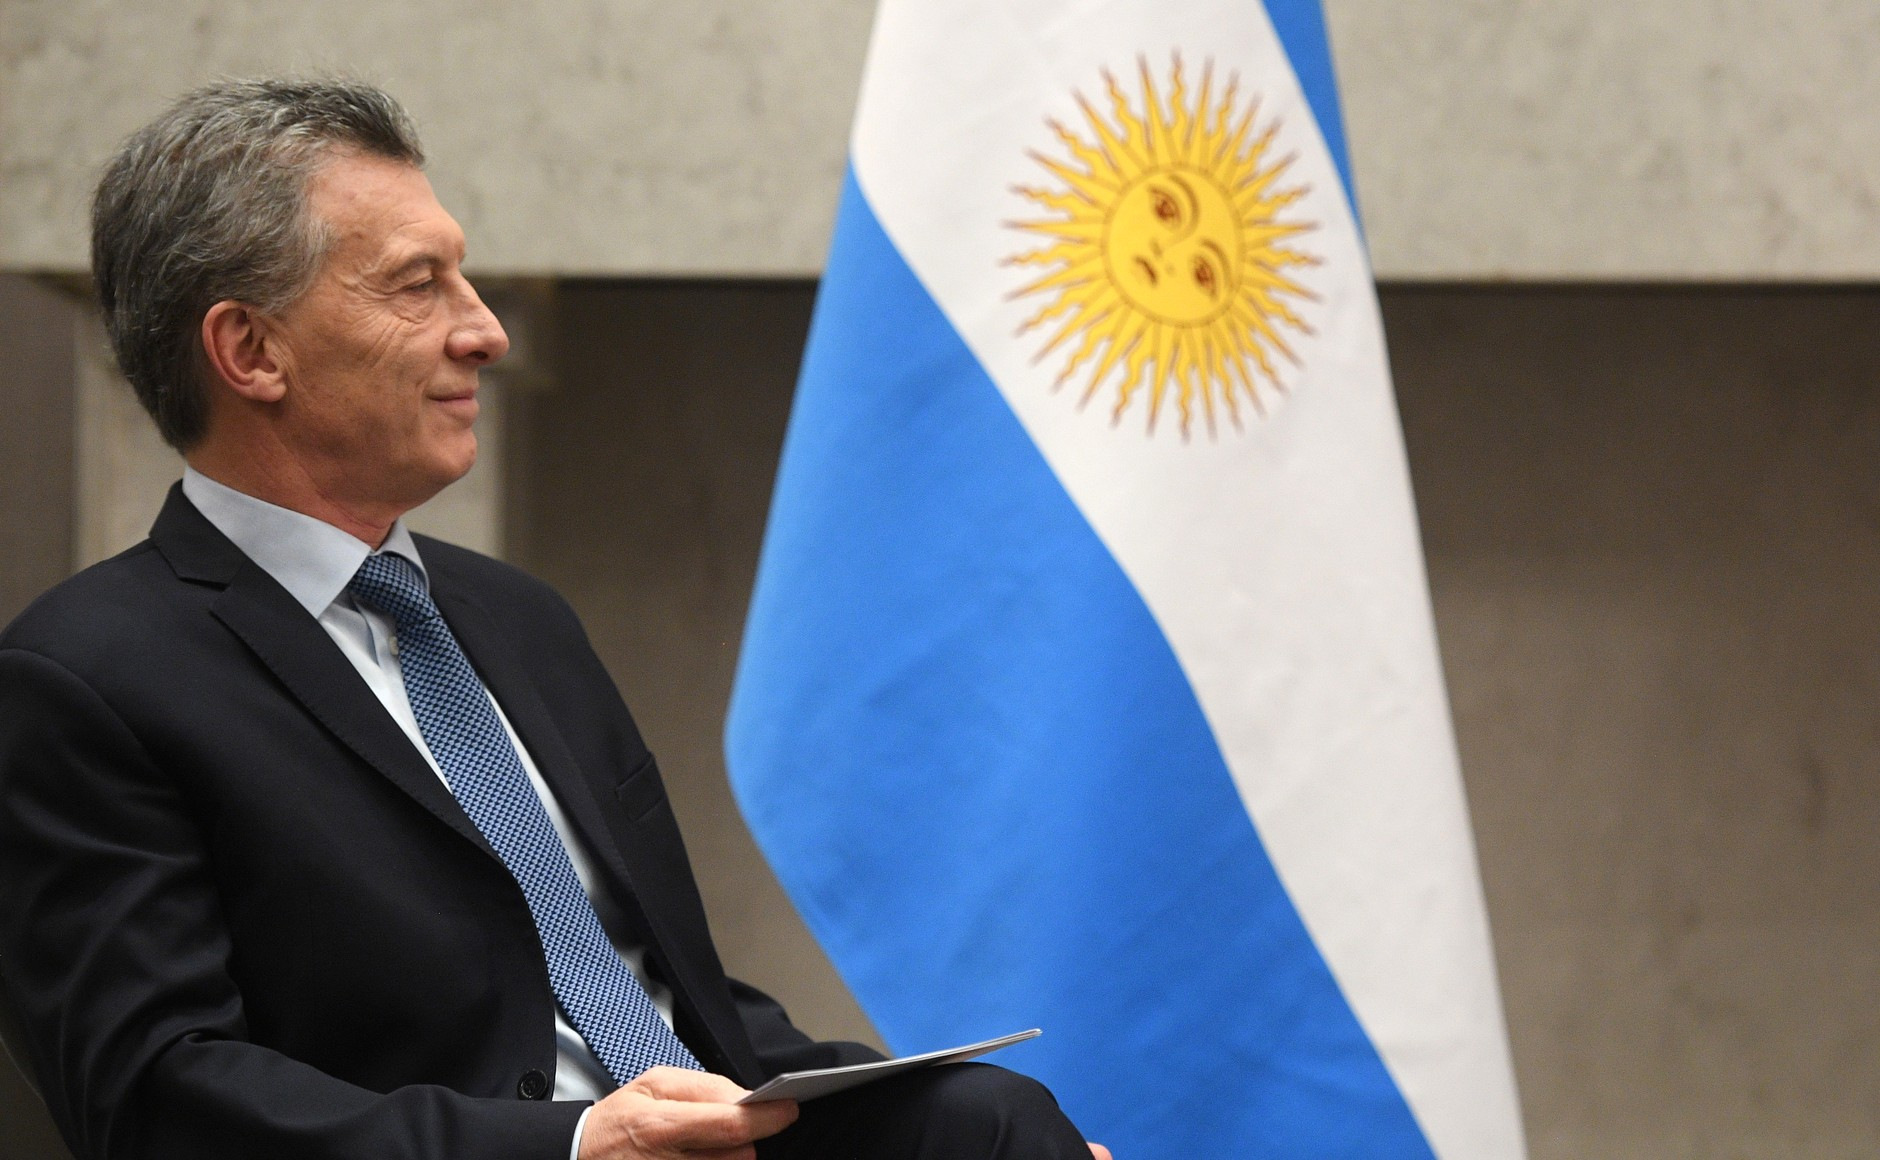 Argentine peso crashes after Macri gets thumped in primary election